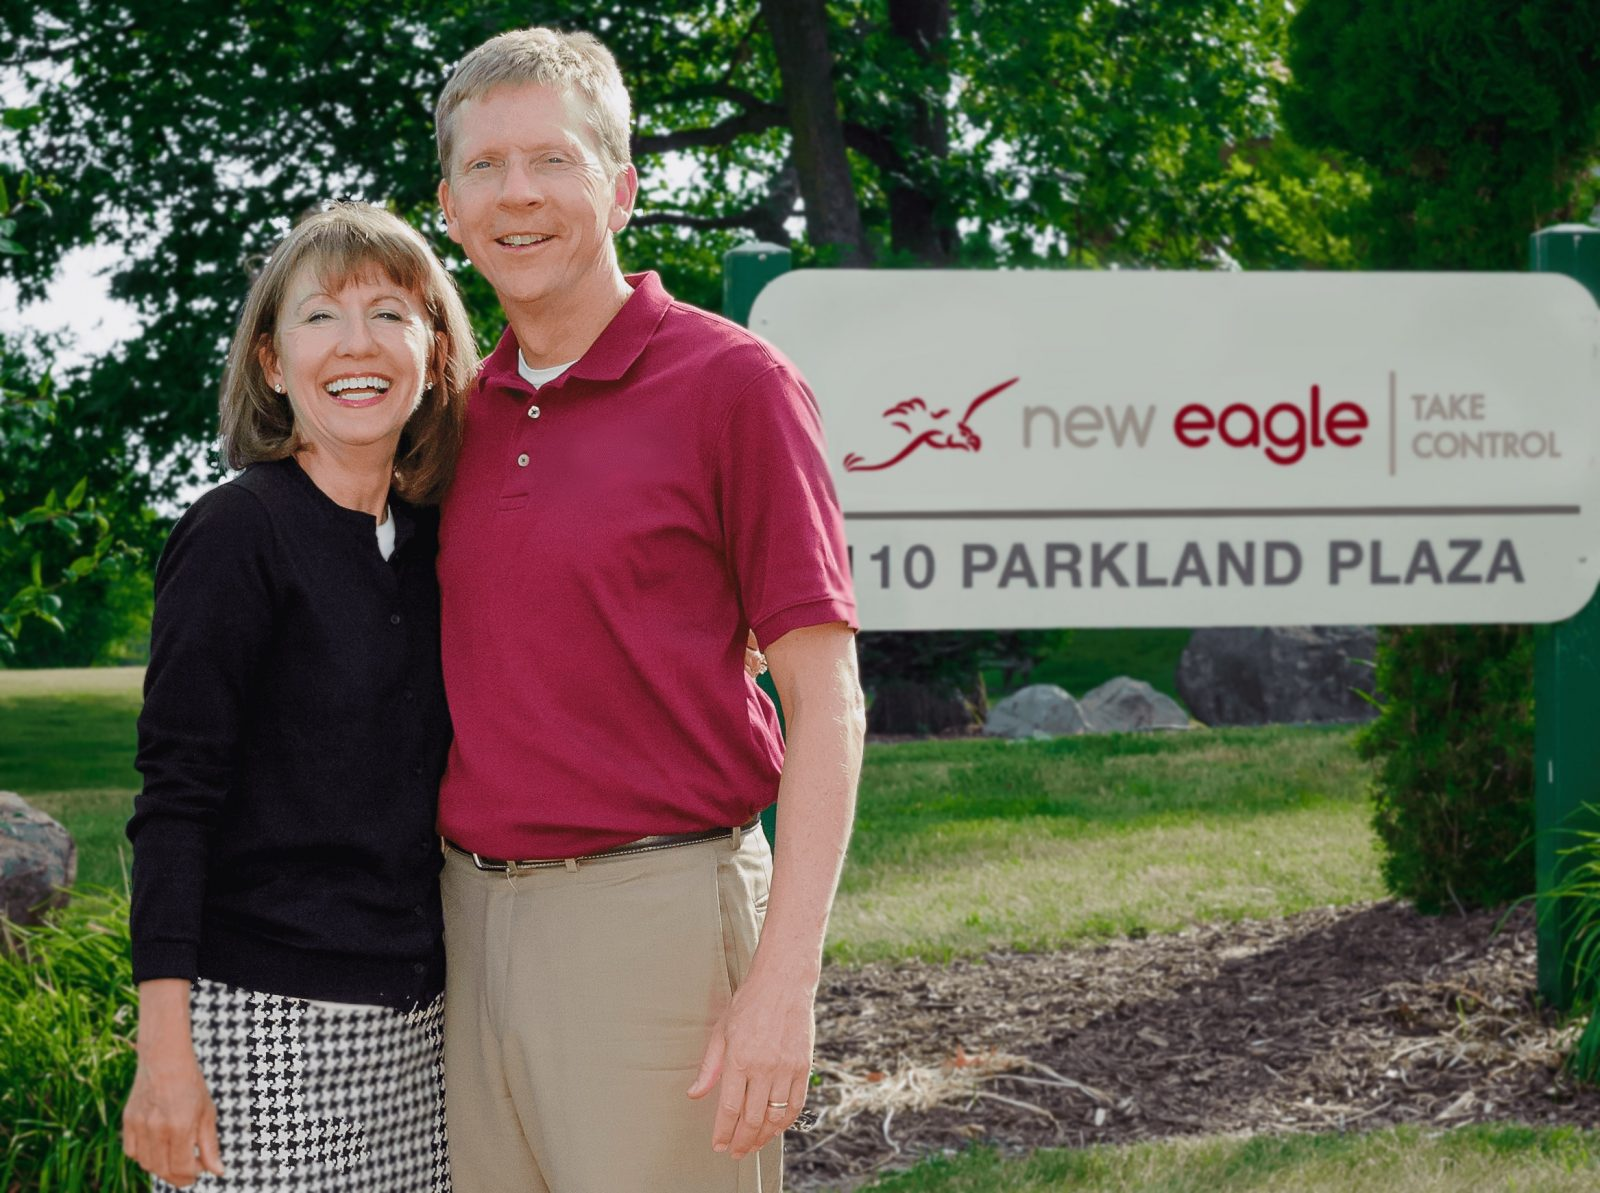 new eagle founders mickey swortzel and rich swortzel